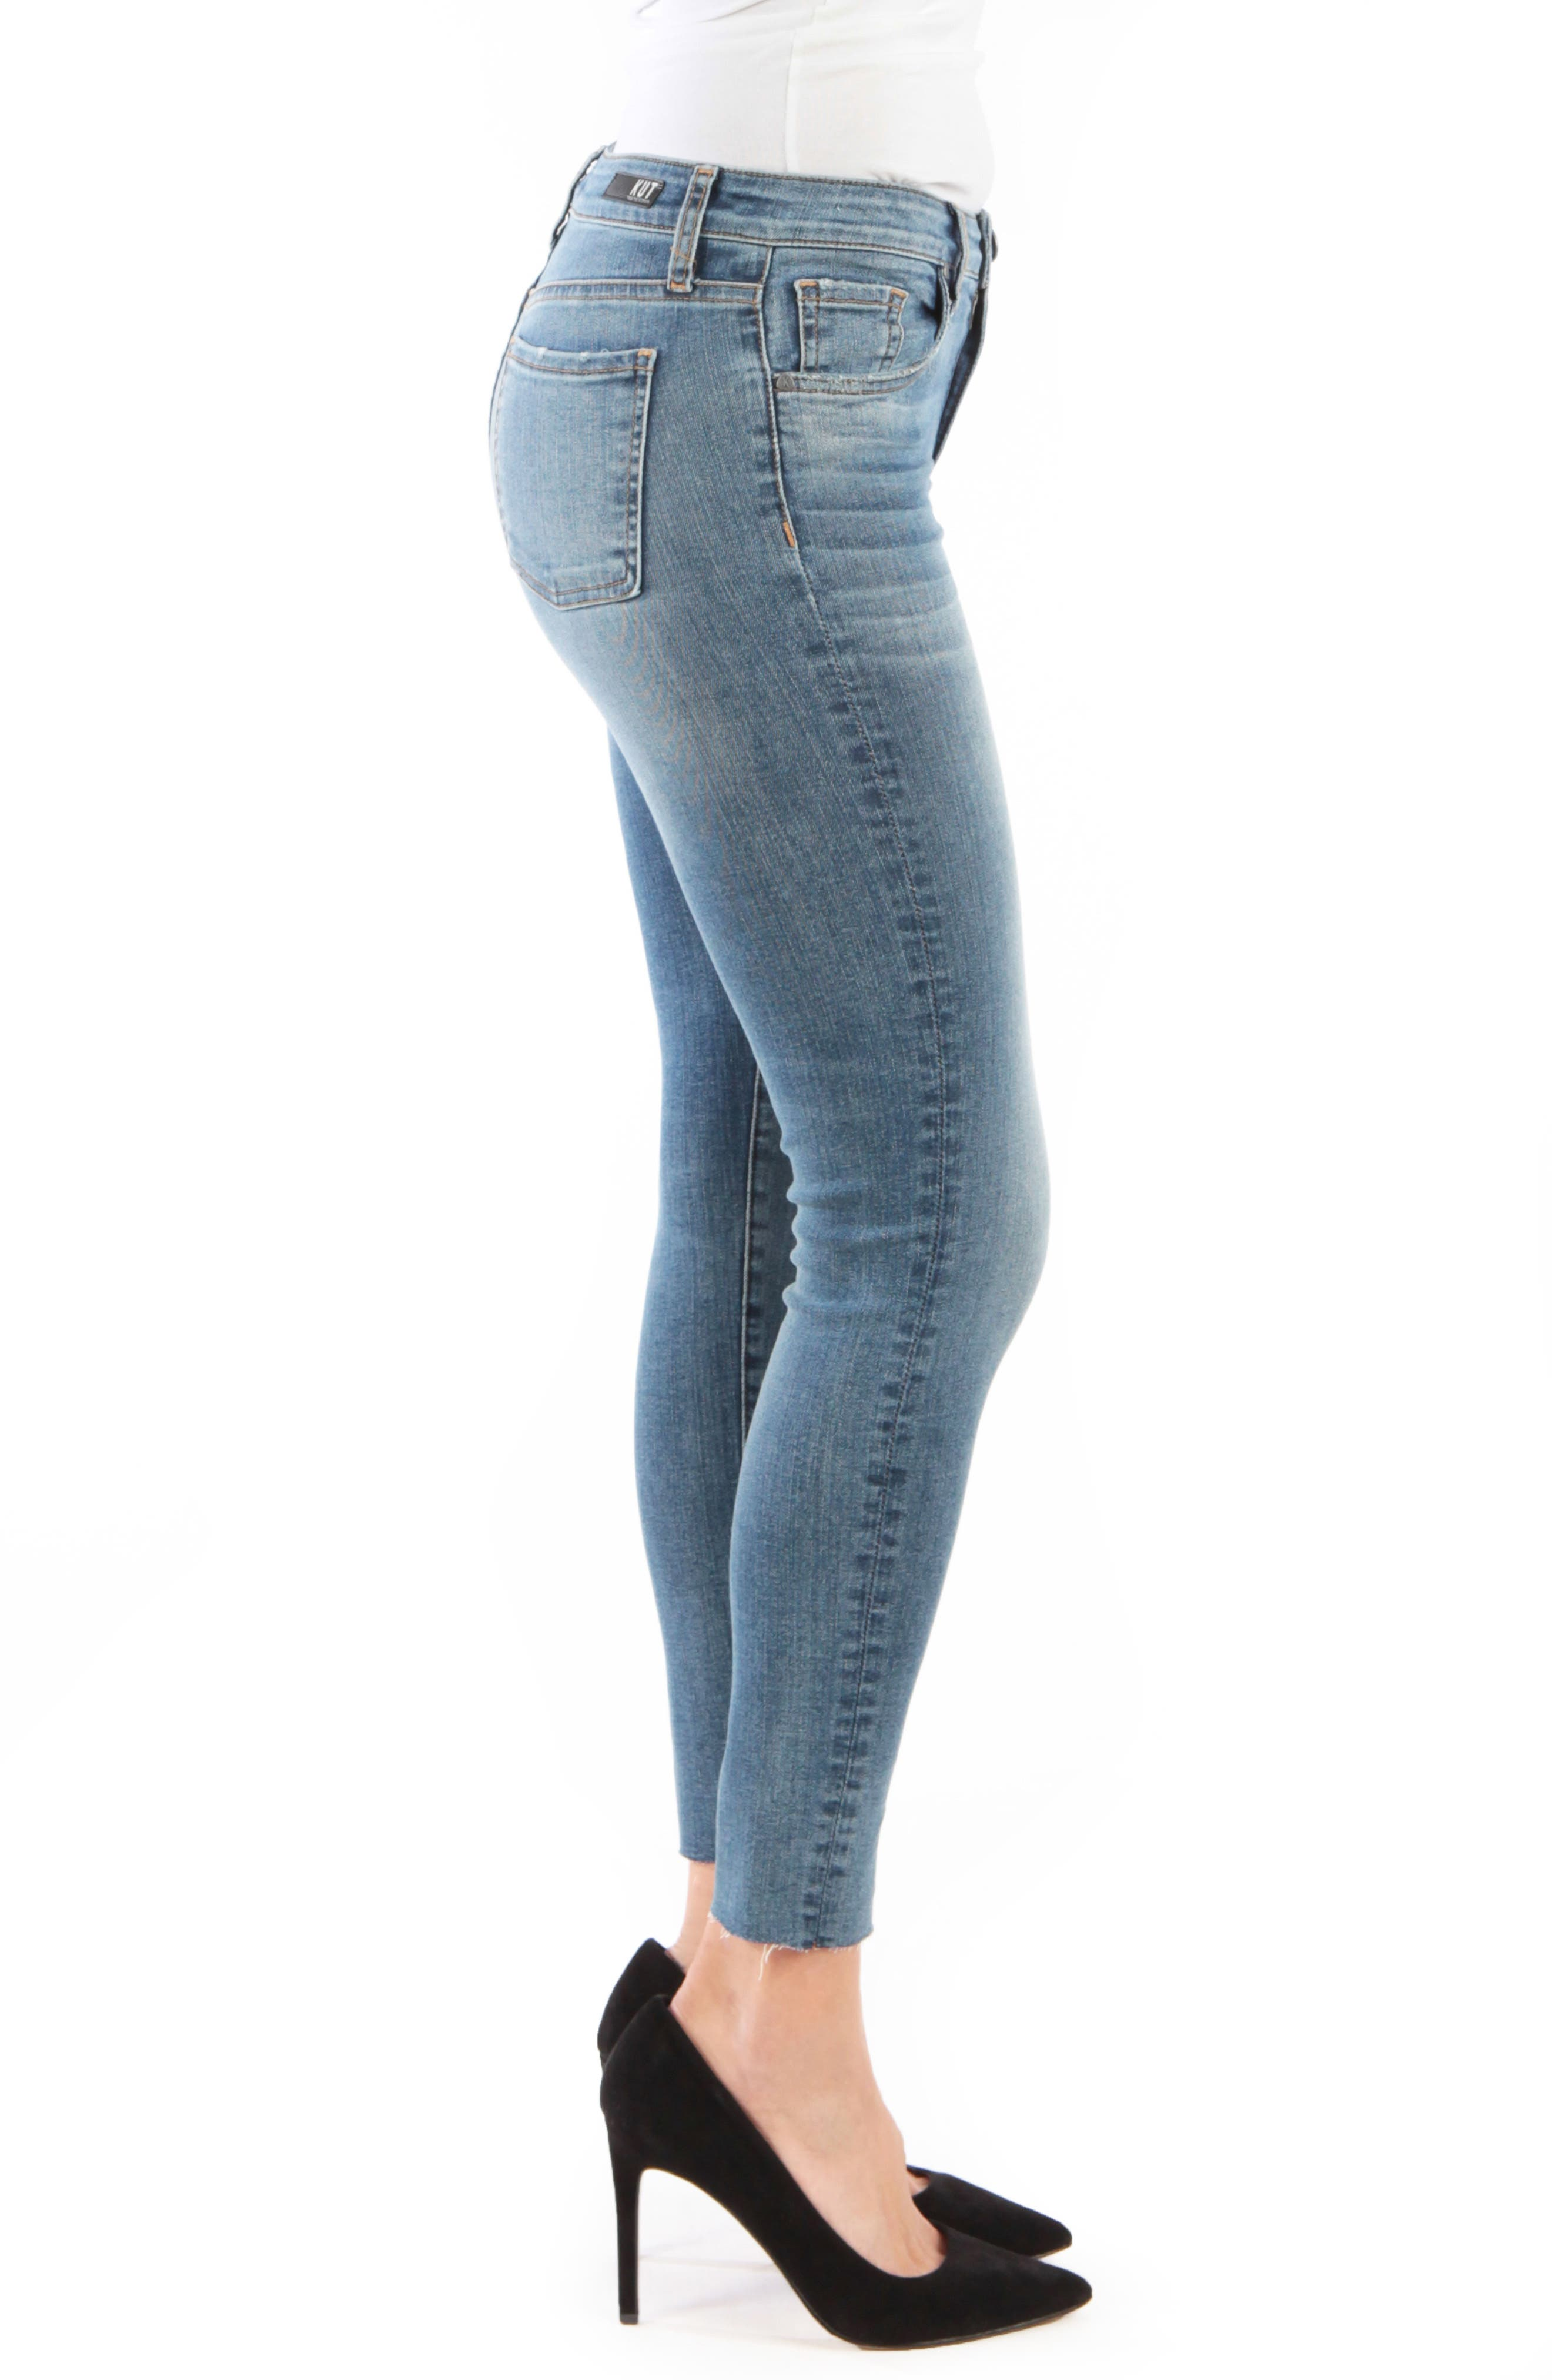 KUT FROM THE KLOTH, Donna High Waist Raw Hem Skinny Jeans, Alternate thumbnail 4, color, PHILOSOPHICAL